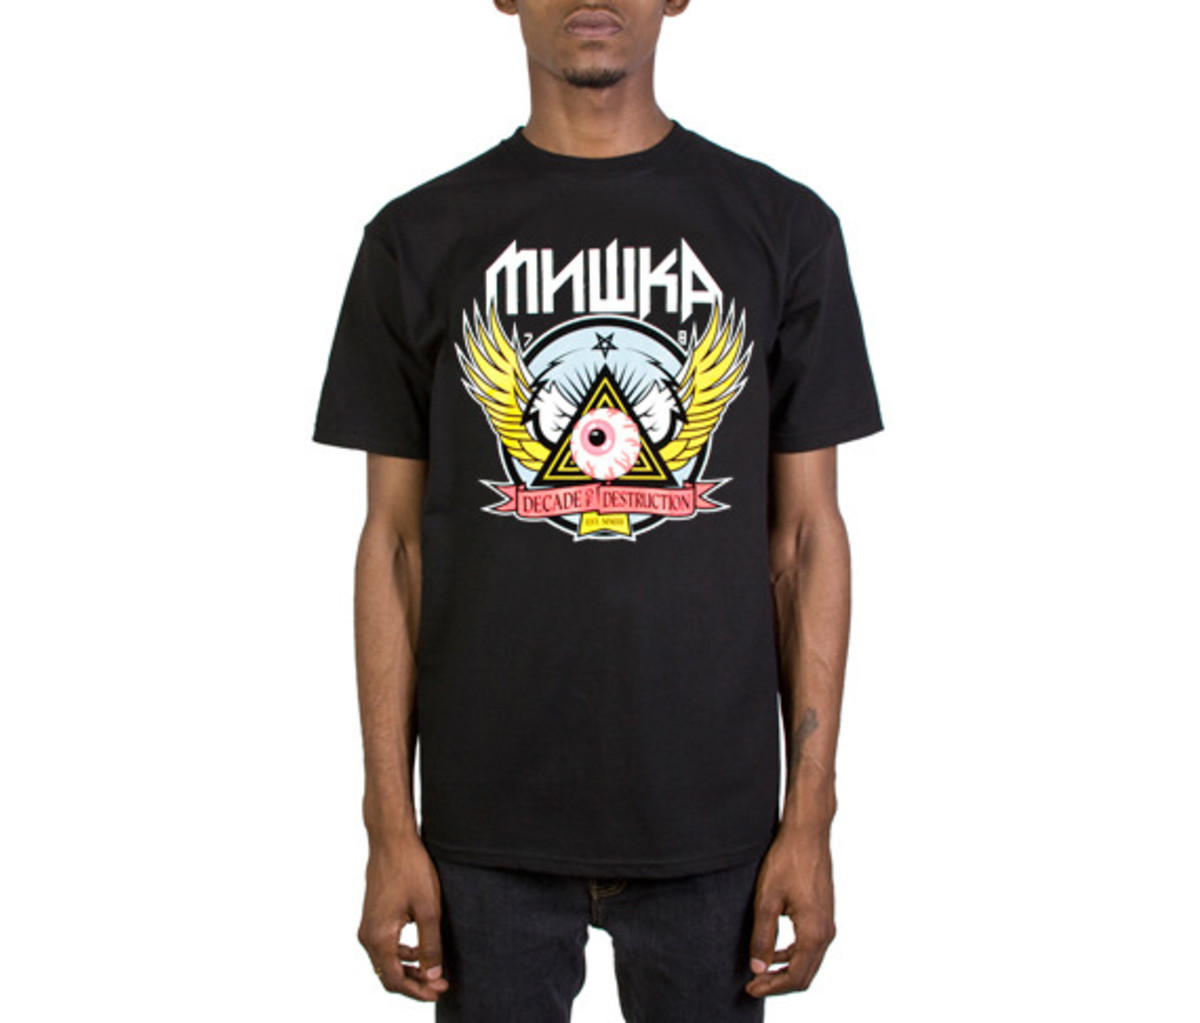 Mishka 10th Anniversary Decade of Destruction Capsule Collection 07